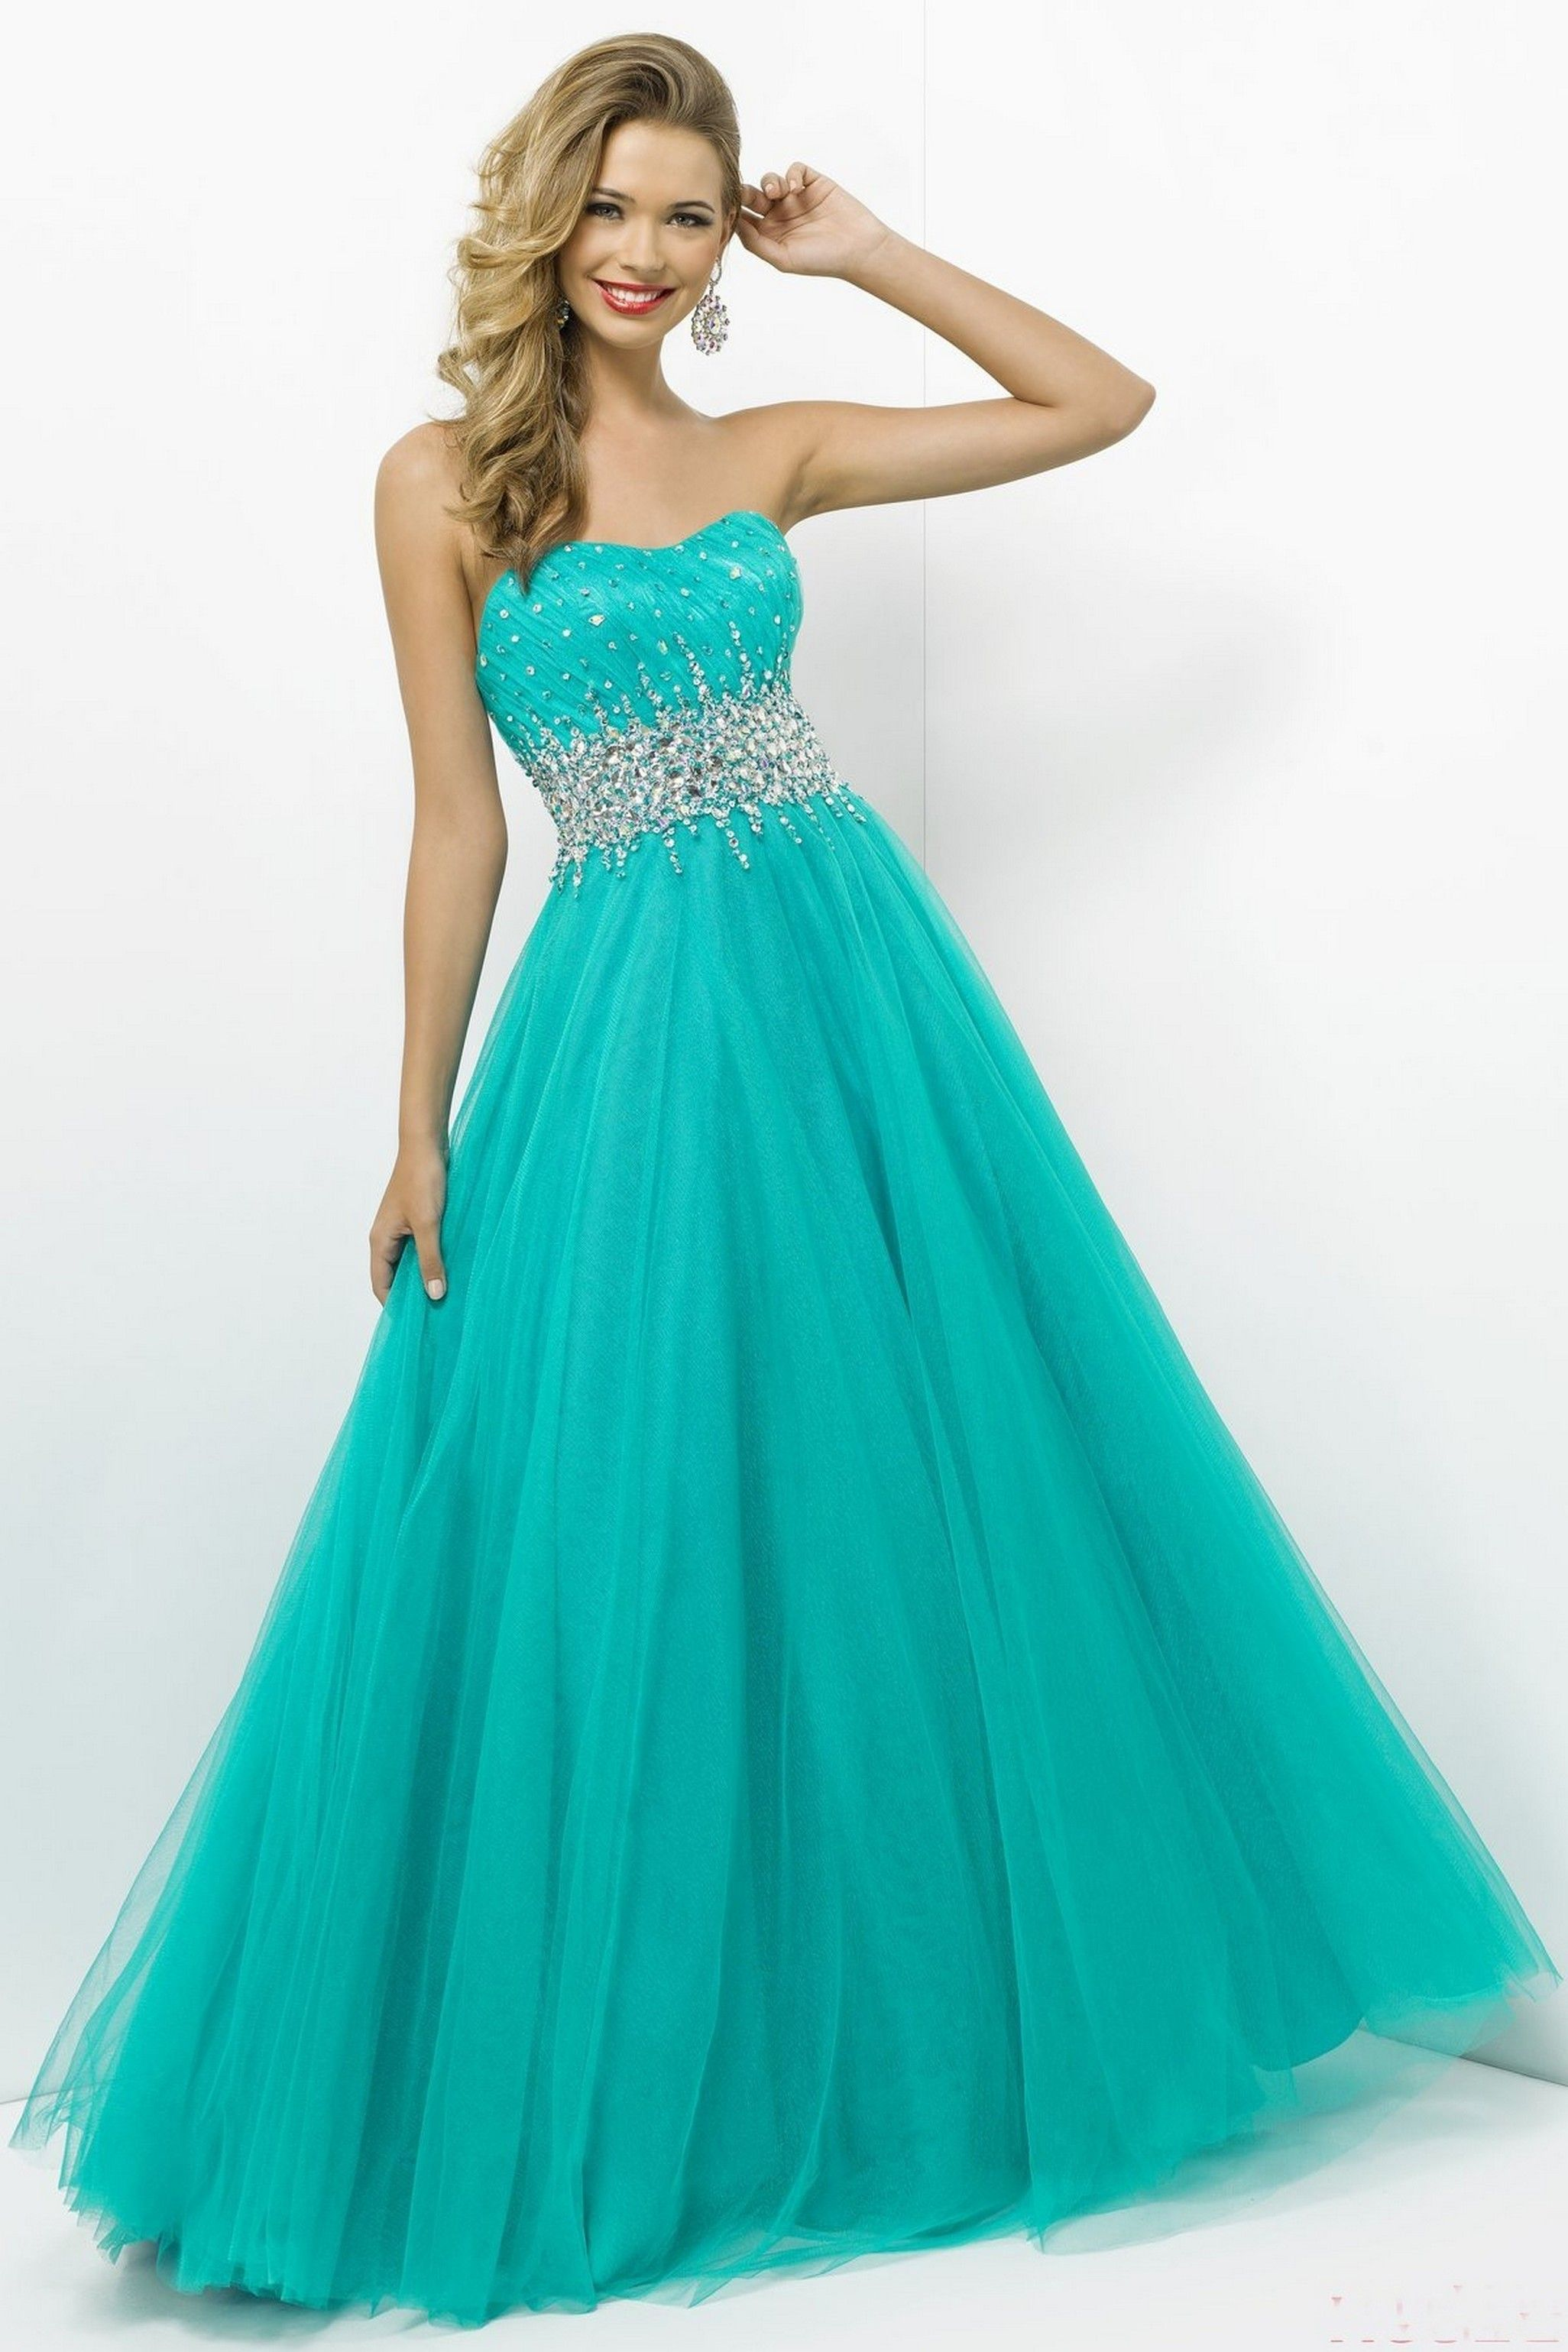 Long Prom Dresses for Teens | Long prom dresses, Prom and Teen